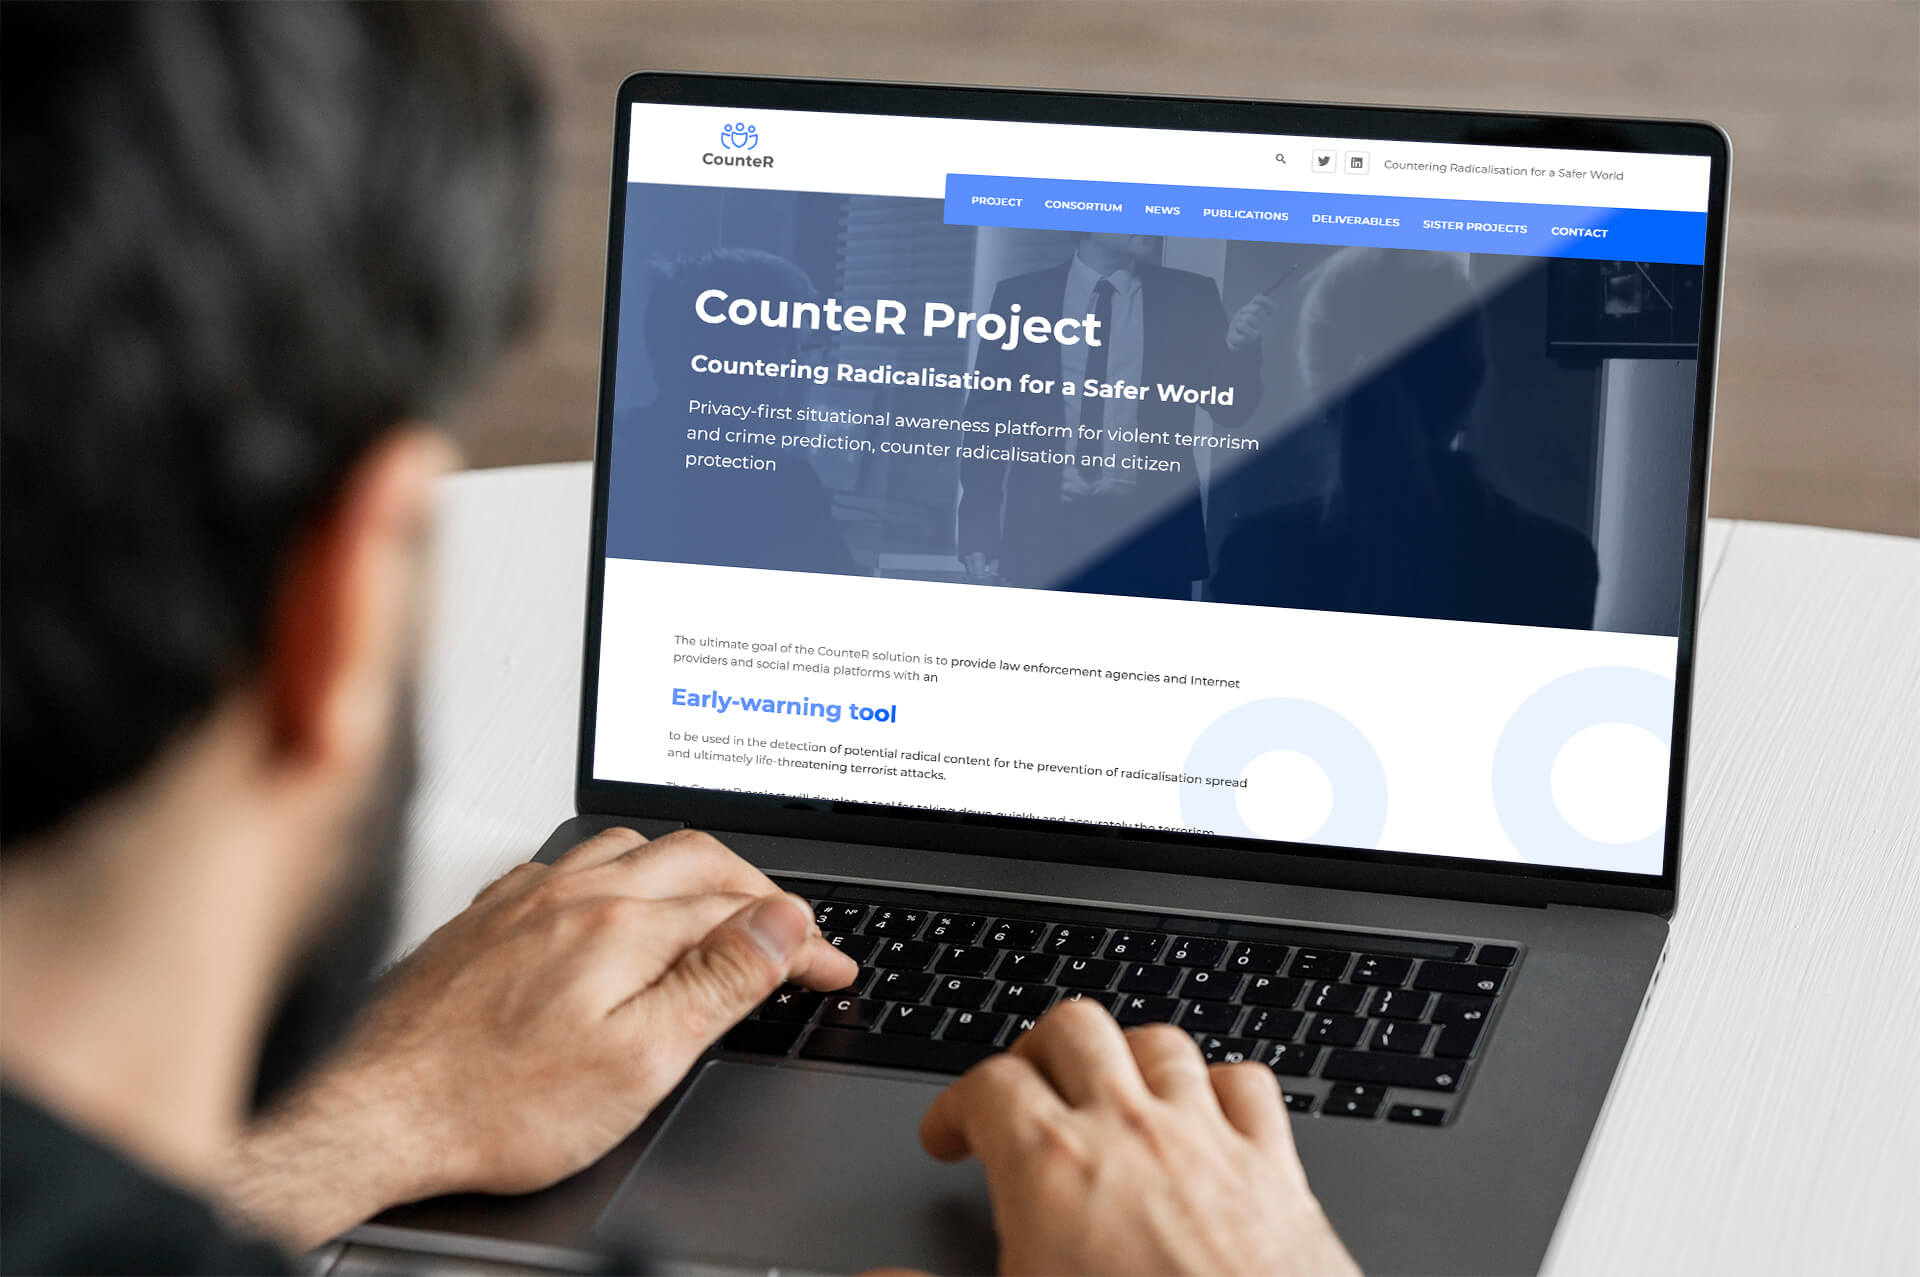 Man typing on a laptop with the Counter Project website open on the screen